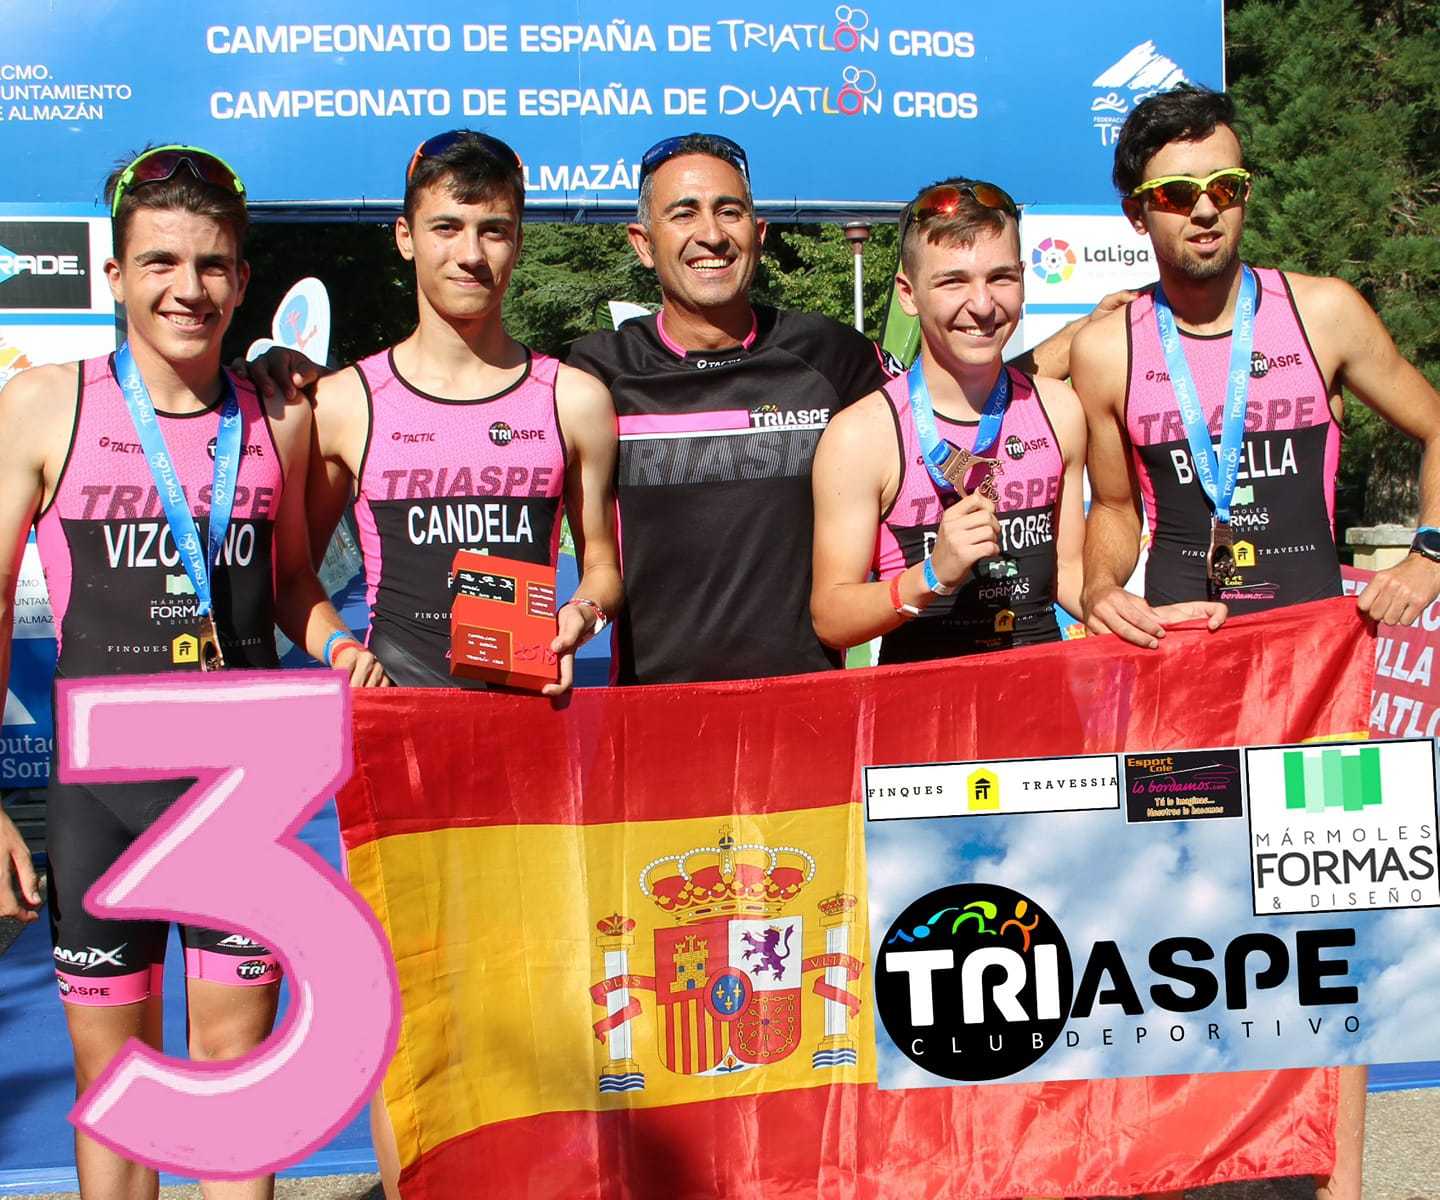 Club Deportivo Triaspe - Aspe (Alicante)